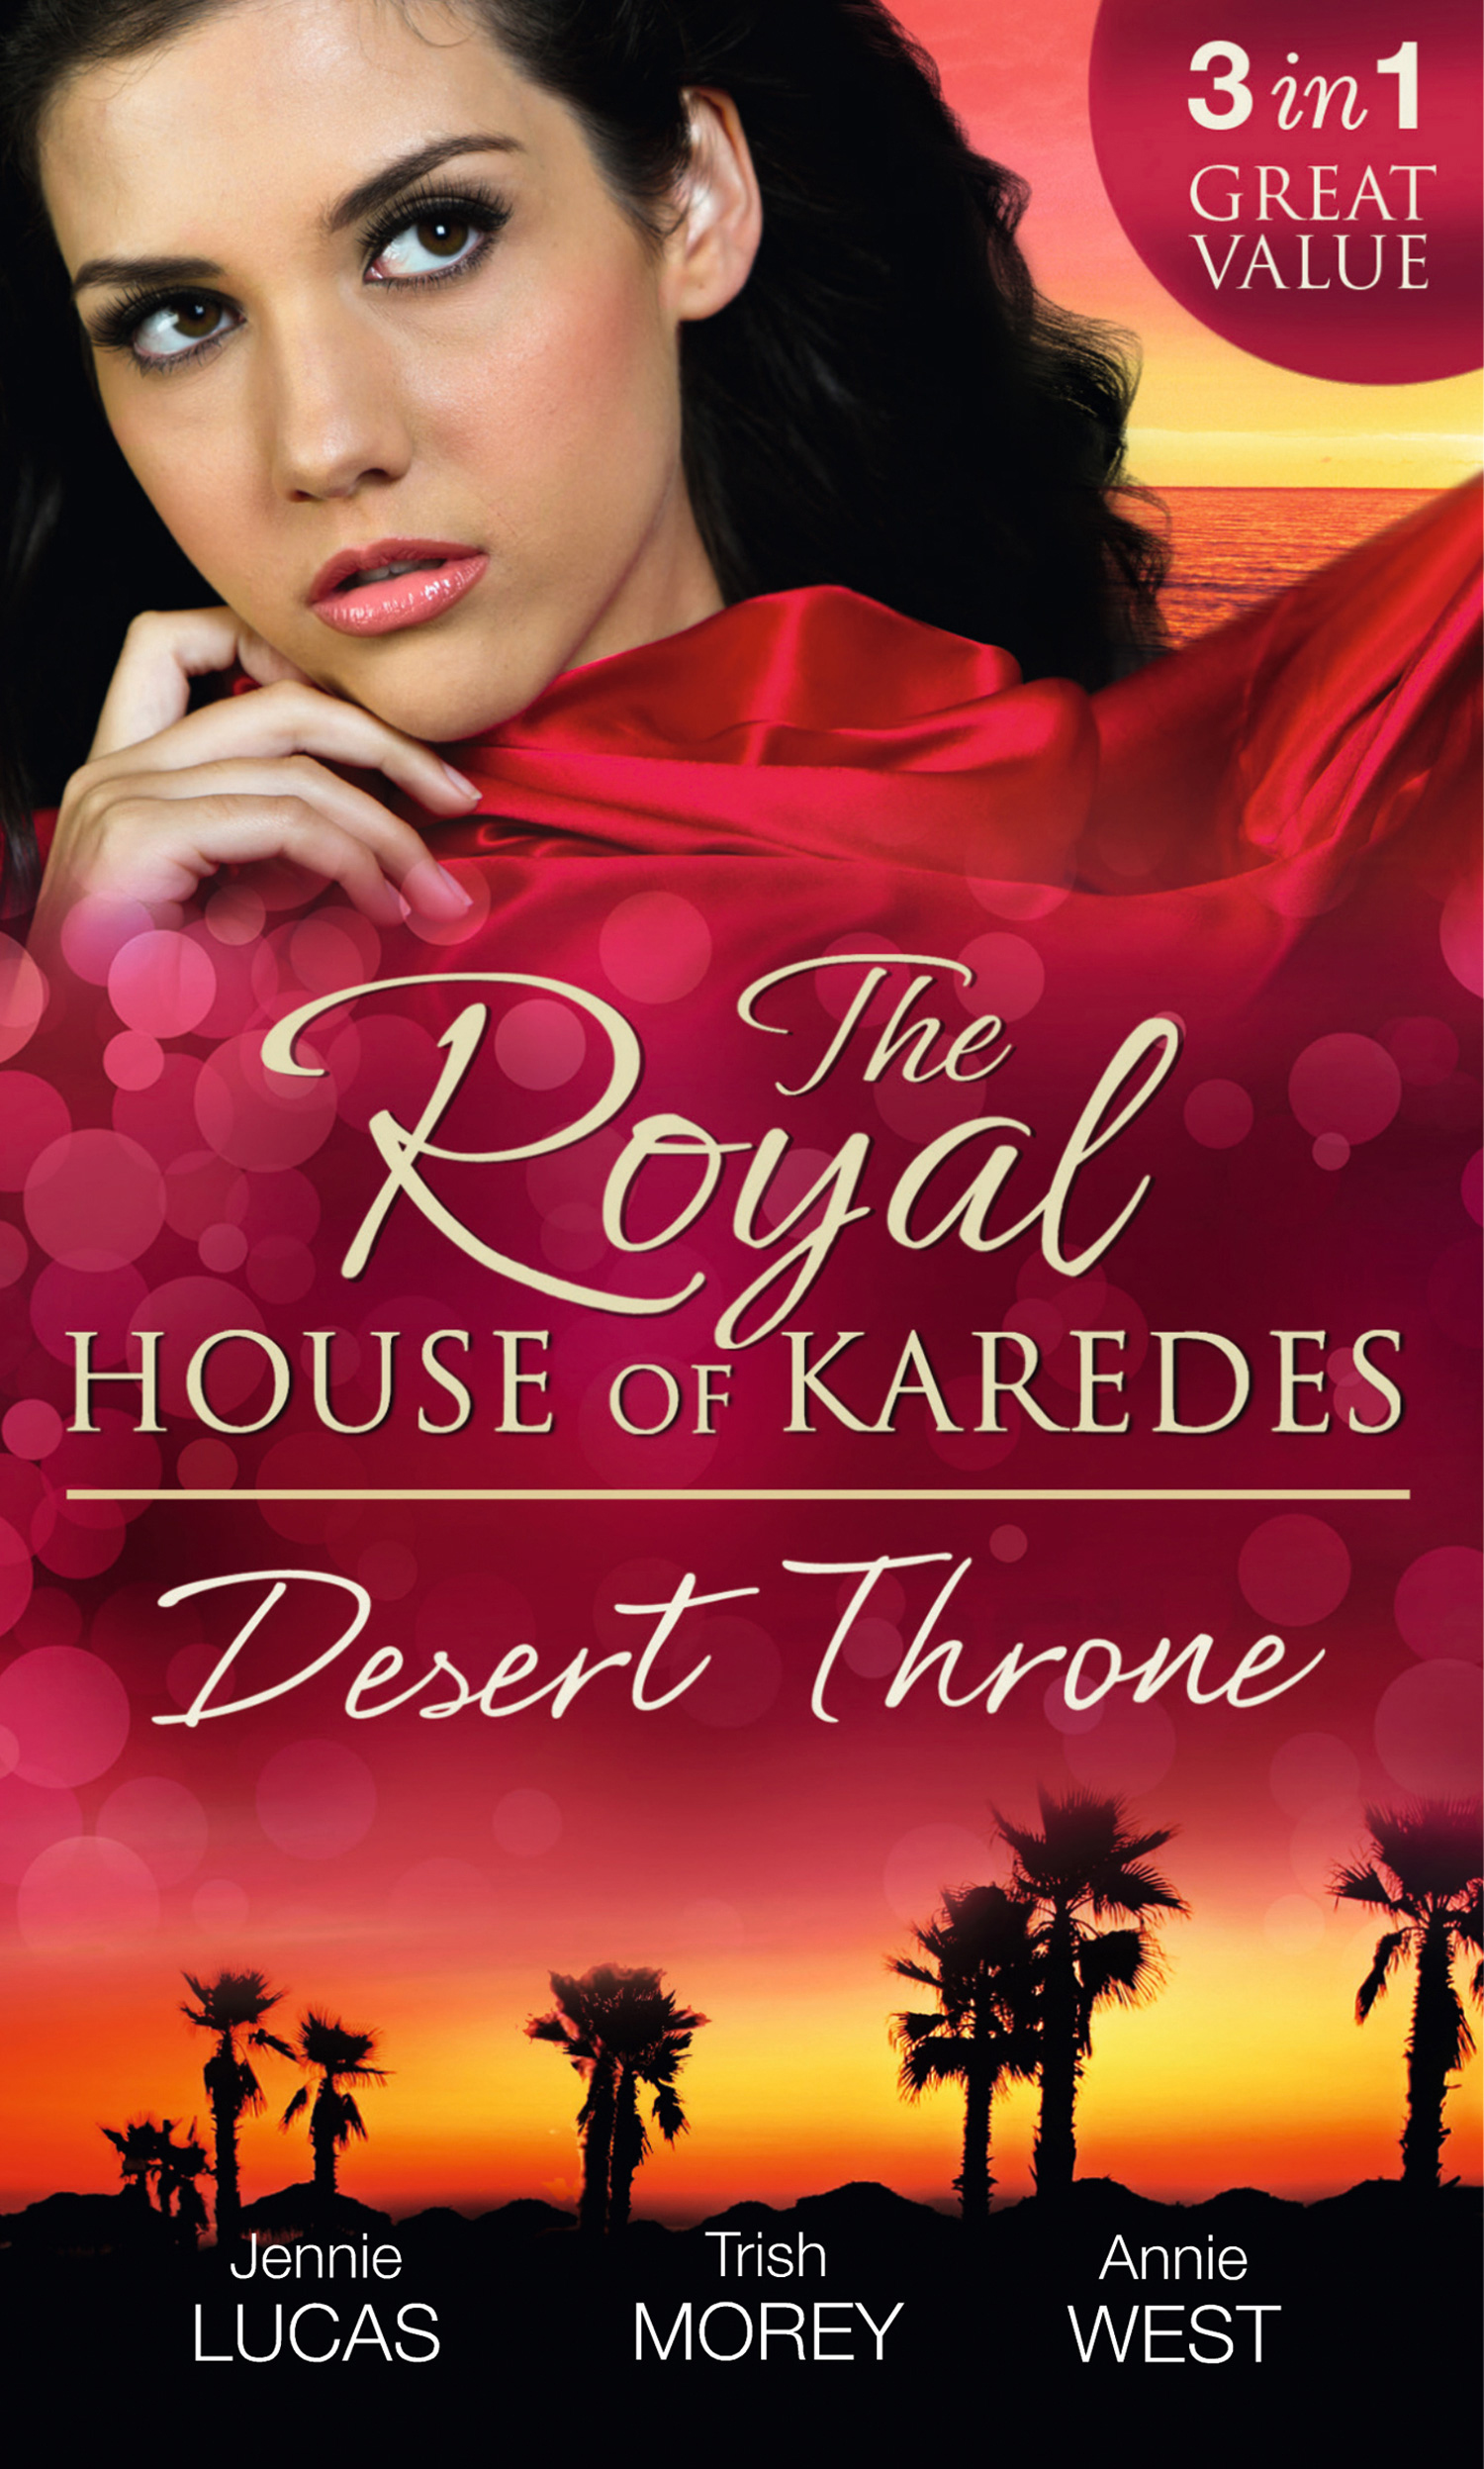 The Royal House of Karedes: The Desert Throne